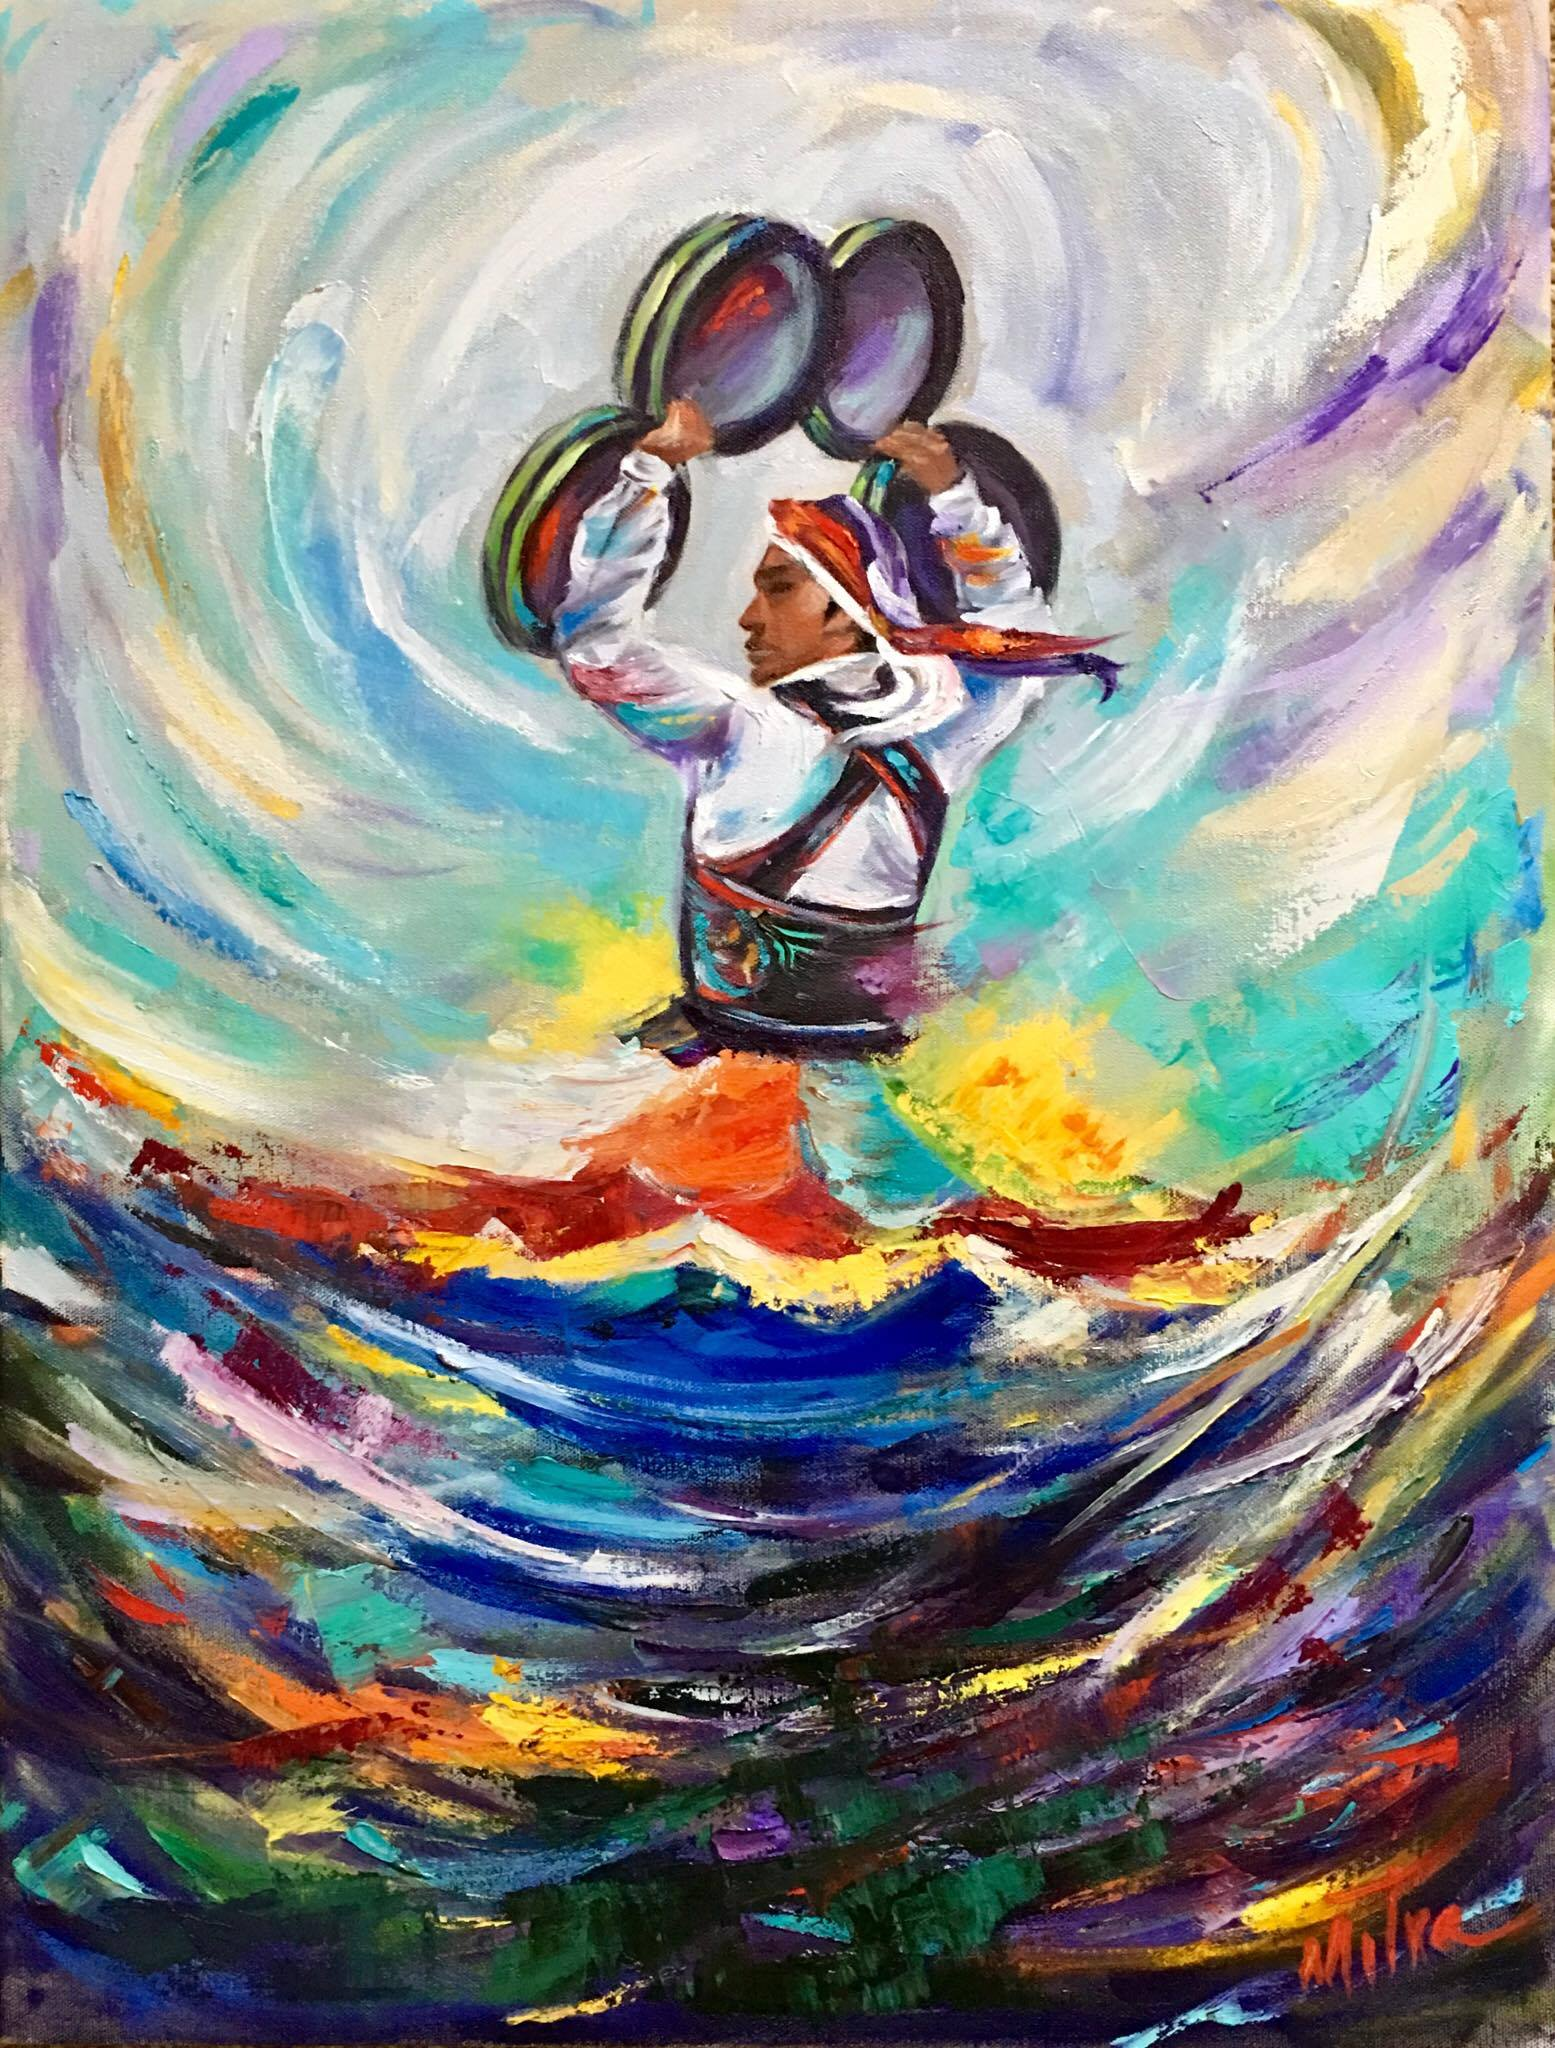 Dervish Dance, 18x24x.75, oil on Canvas, $500 (FREE SHIPPING & HANDLING WITHIN THE U.S.)